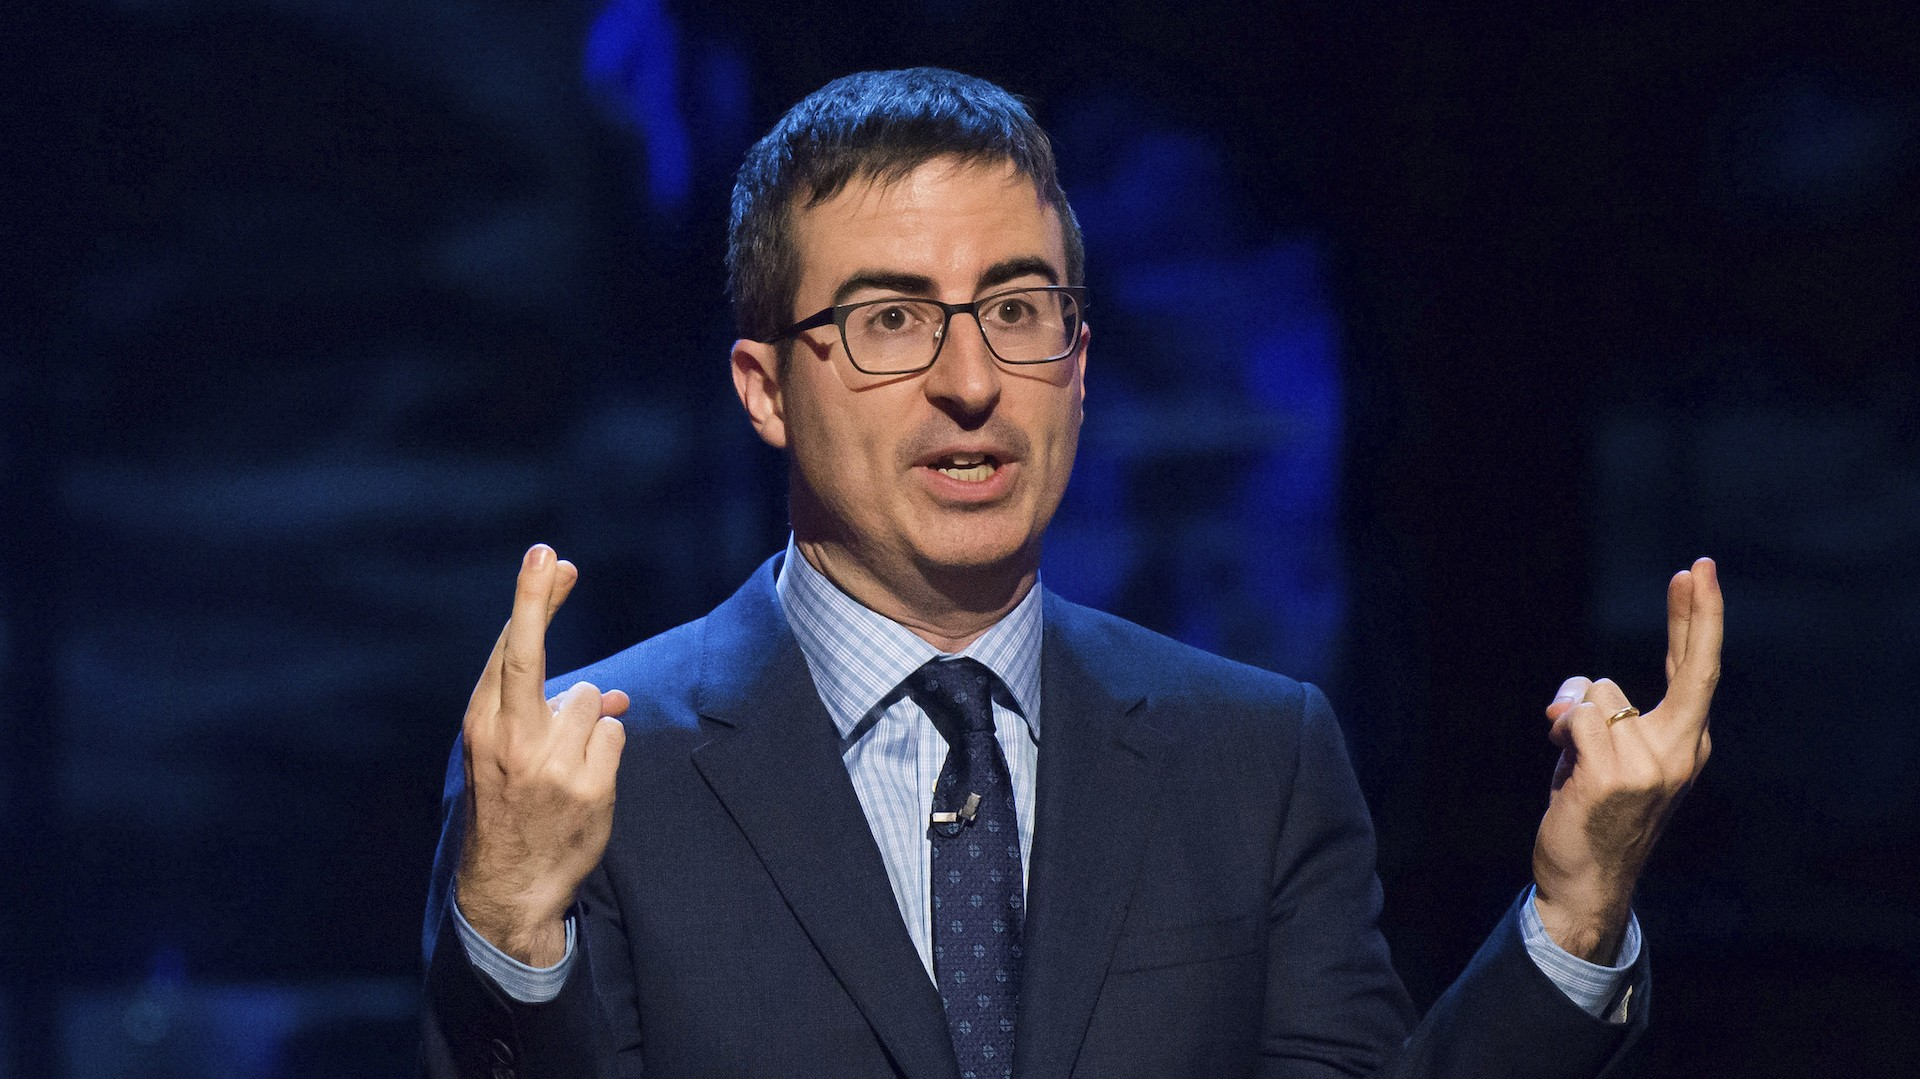 FCC hit by online attacks after John Oliver criticizes net neutrality proposal